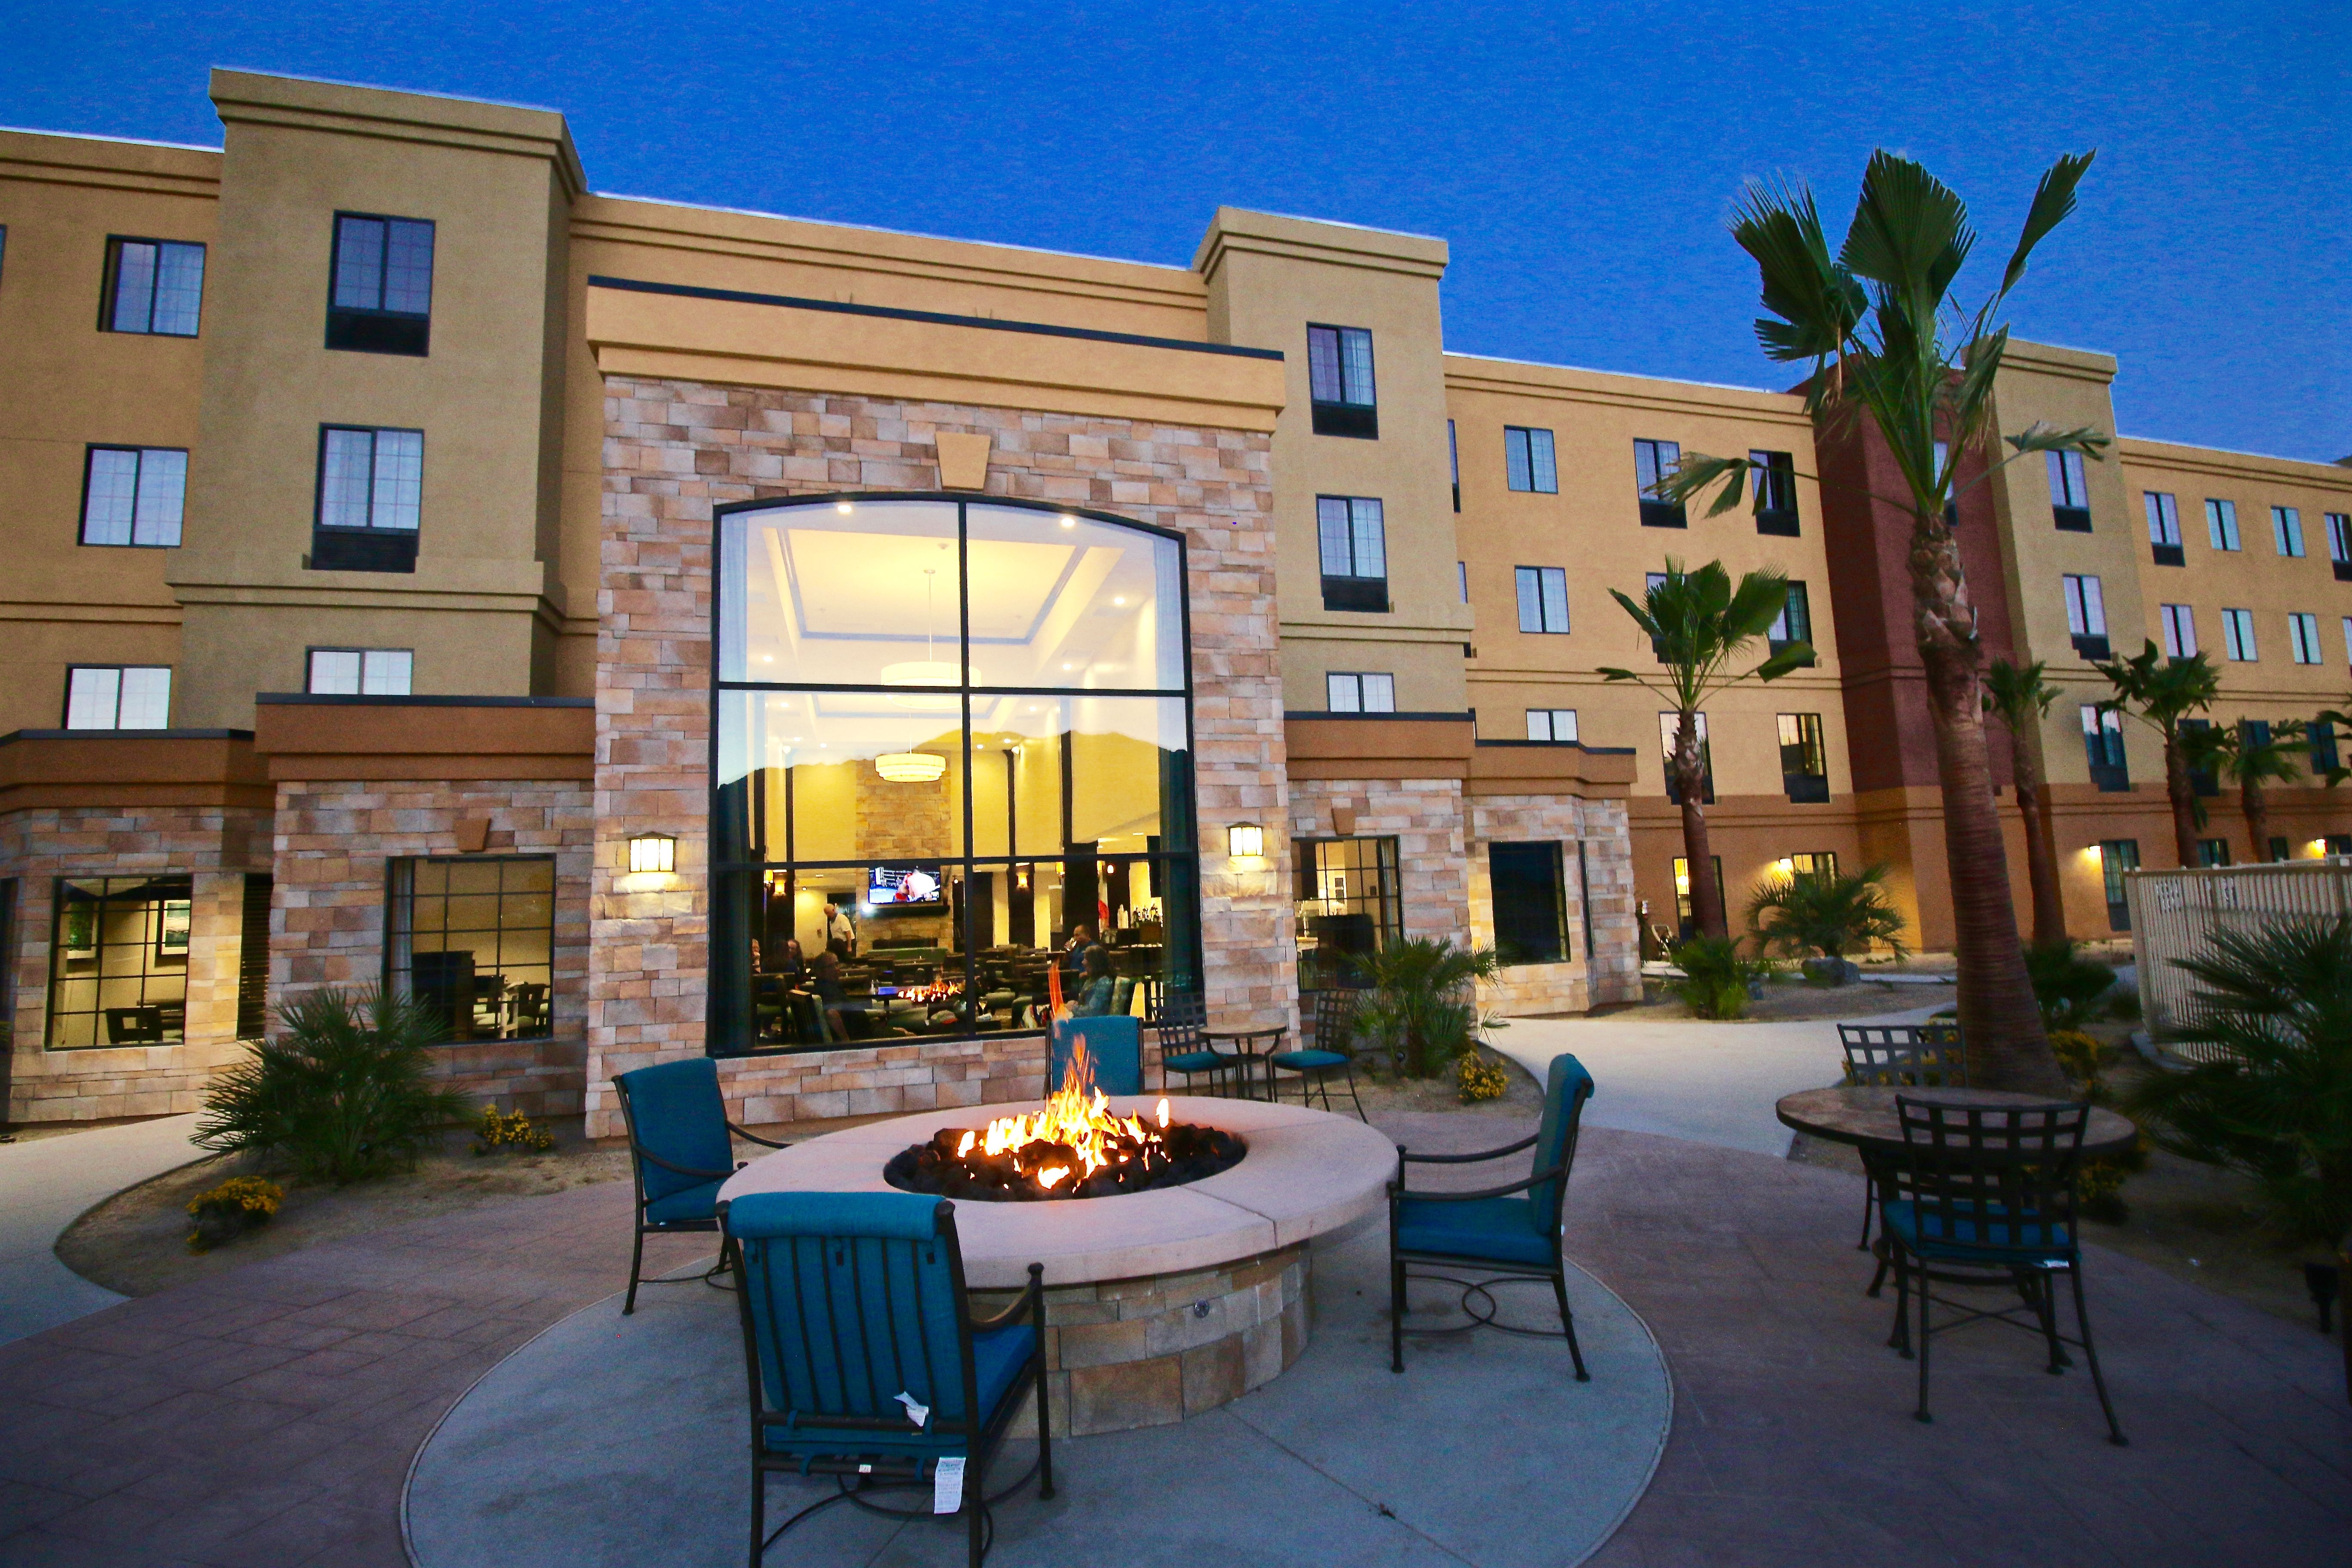 Official site of Staybridge Suites Cathedral City. Staybridge Suites offers  free breakfast, free internet, social evening receptions, a fitness room,  ...